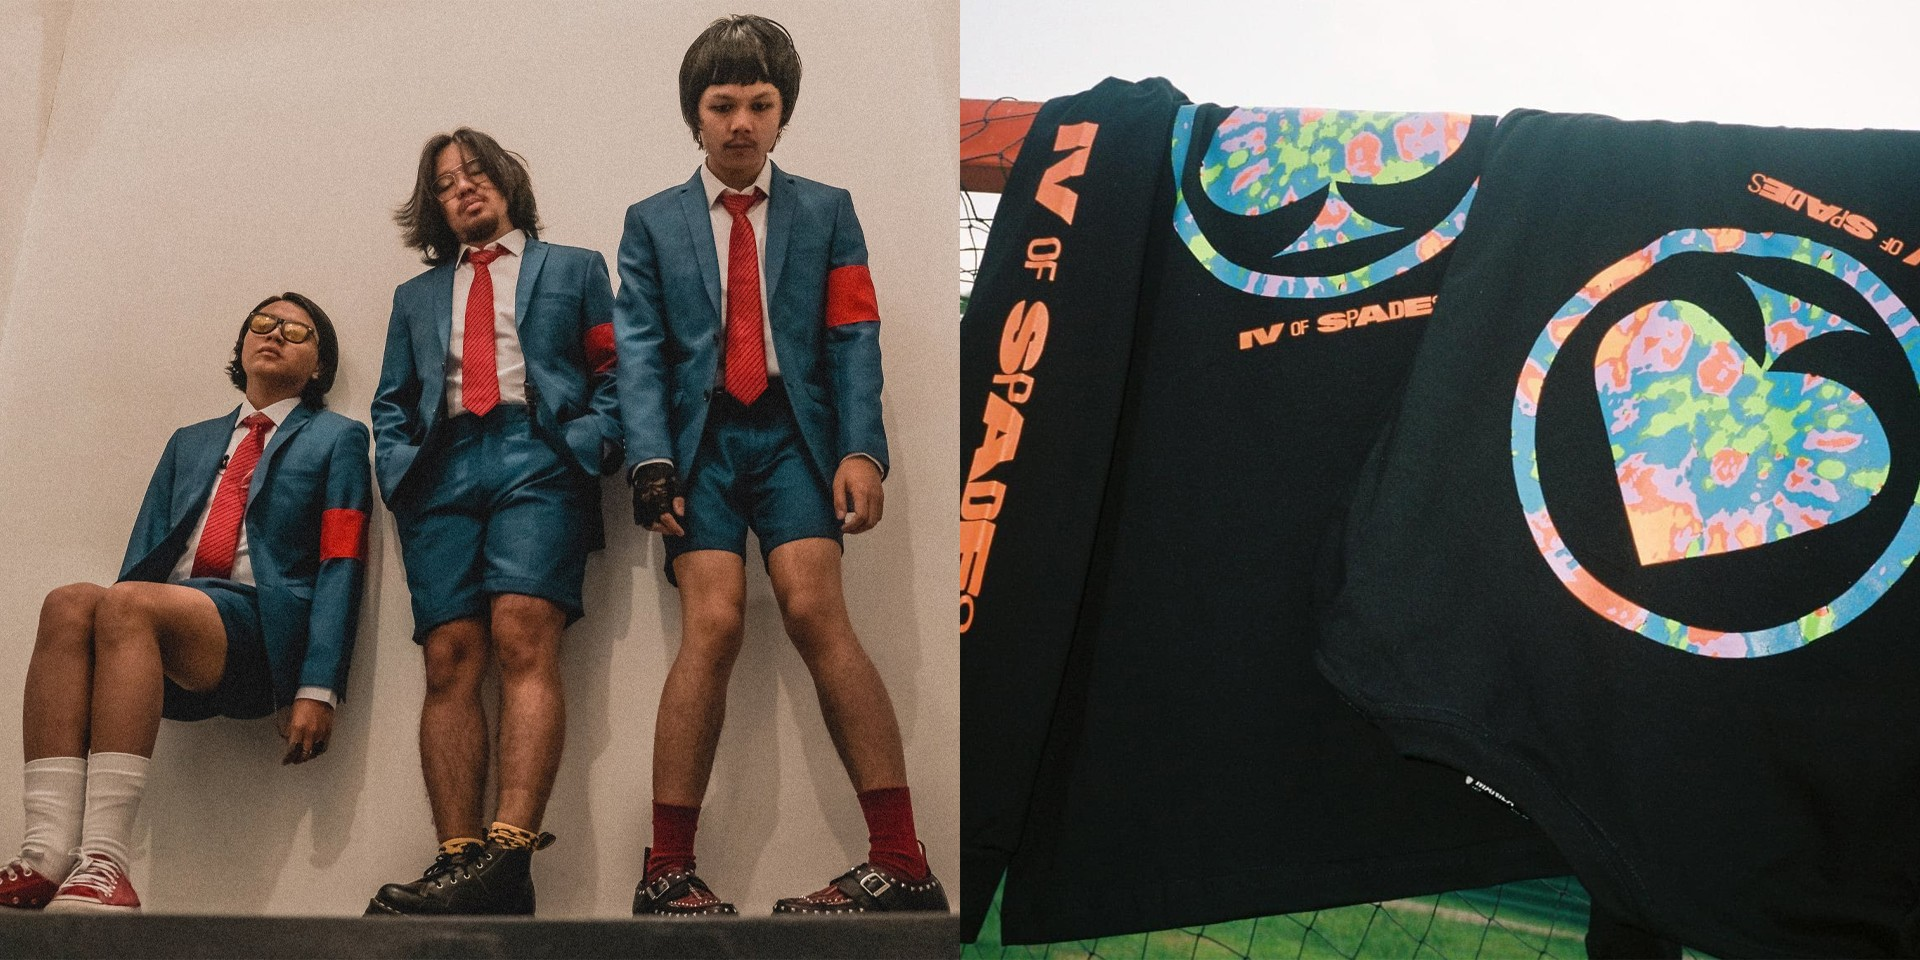 IV Of Spades collaborate with Team Manila for limited edition merch